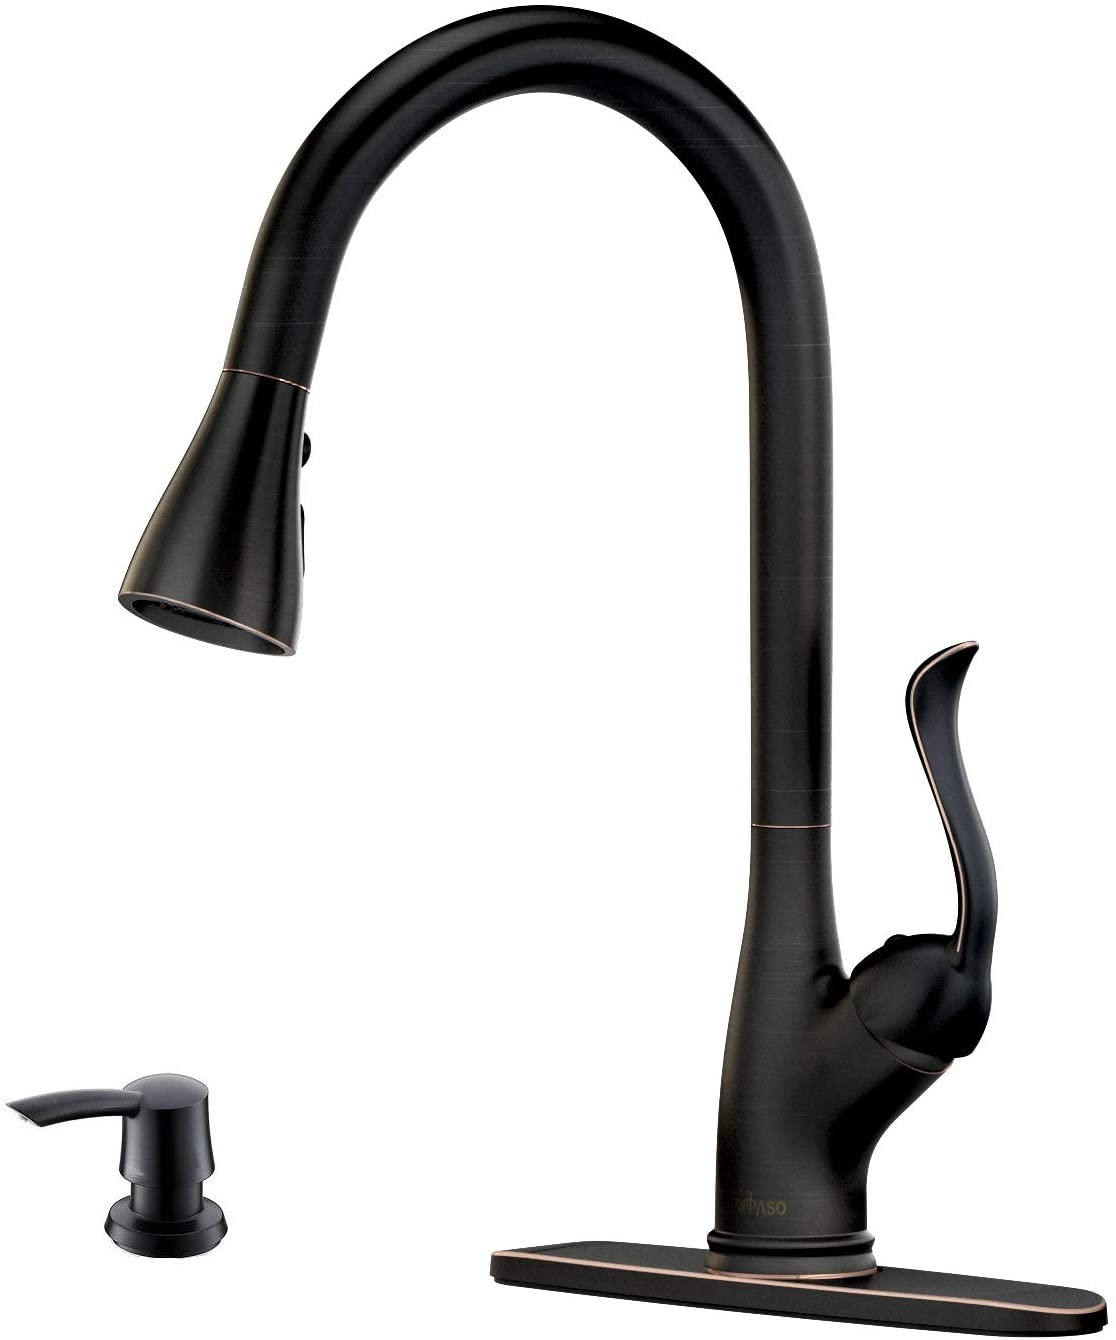 Patented Pull Down Kitchen Faucet With Sprayer Oil Rubbed Bronze Single Handle Antique One Hole High Arc Pull Out Kitchen Sink Faucets And Soap Dispenser Appaso Amazon Com